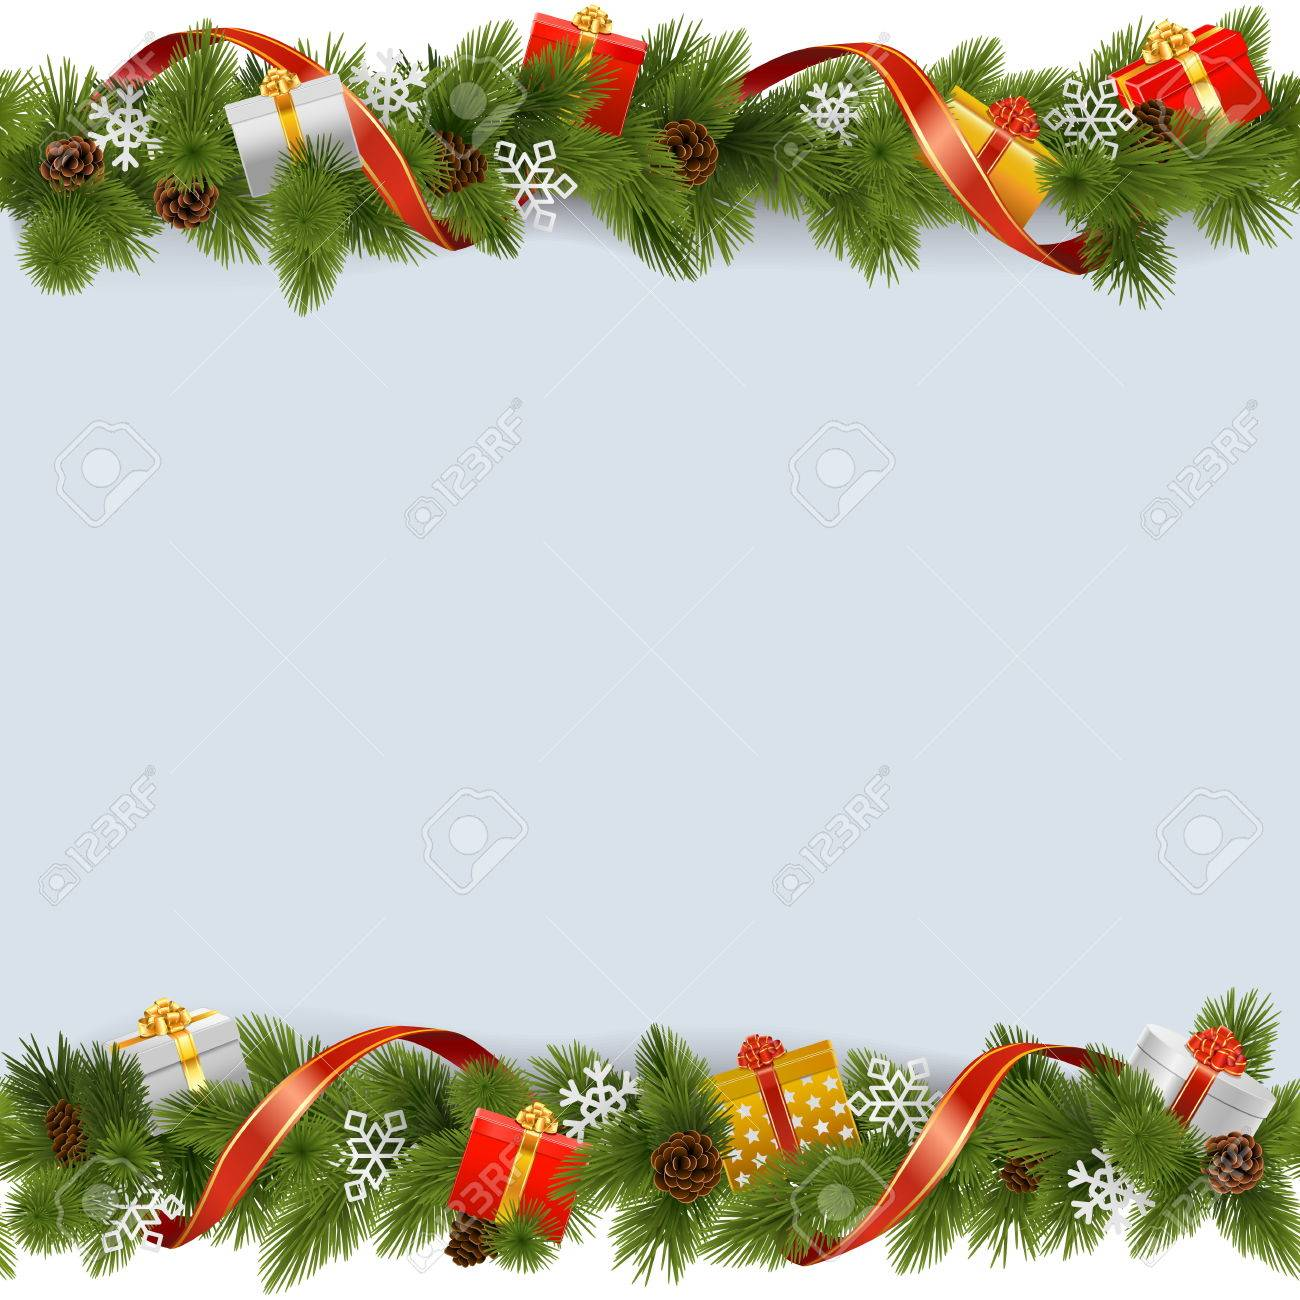 Vector Christmas Border with Gifts isolated on white background - 48298373